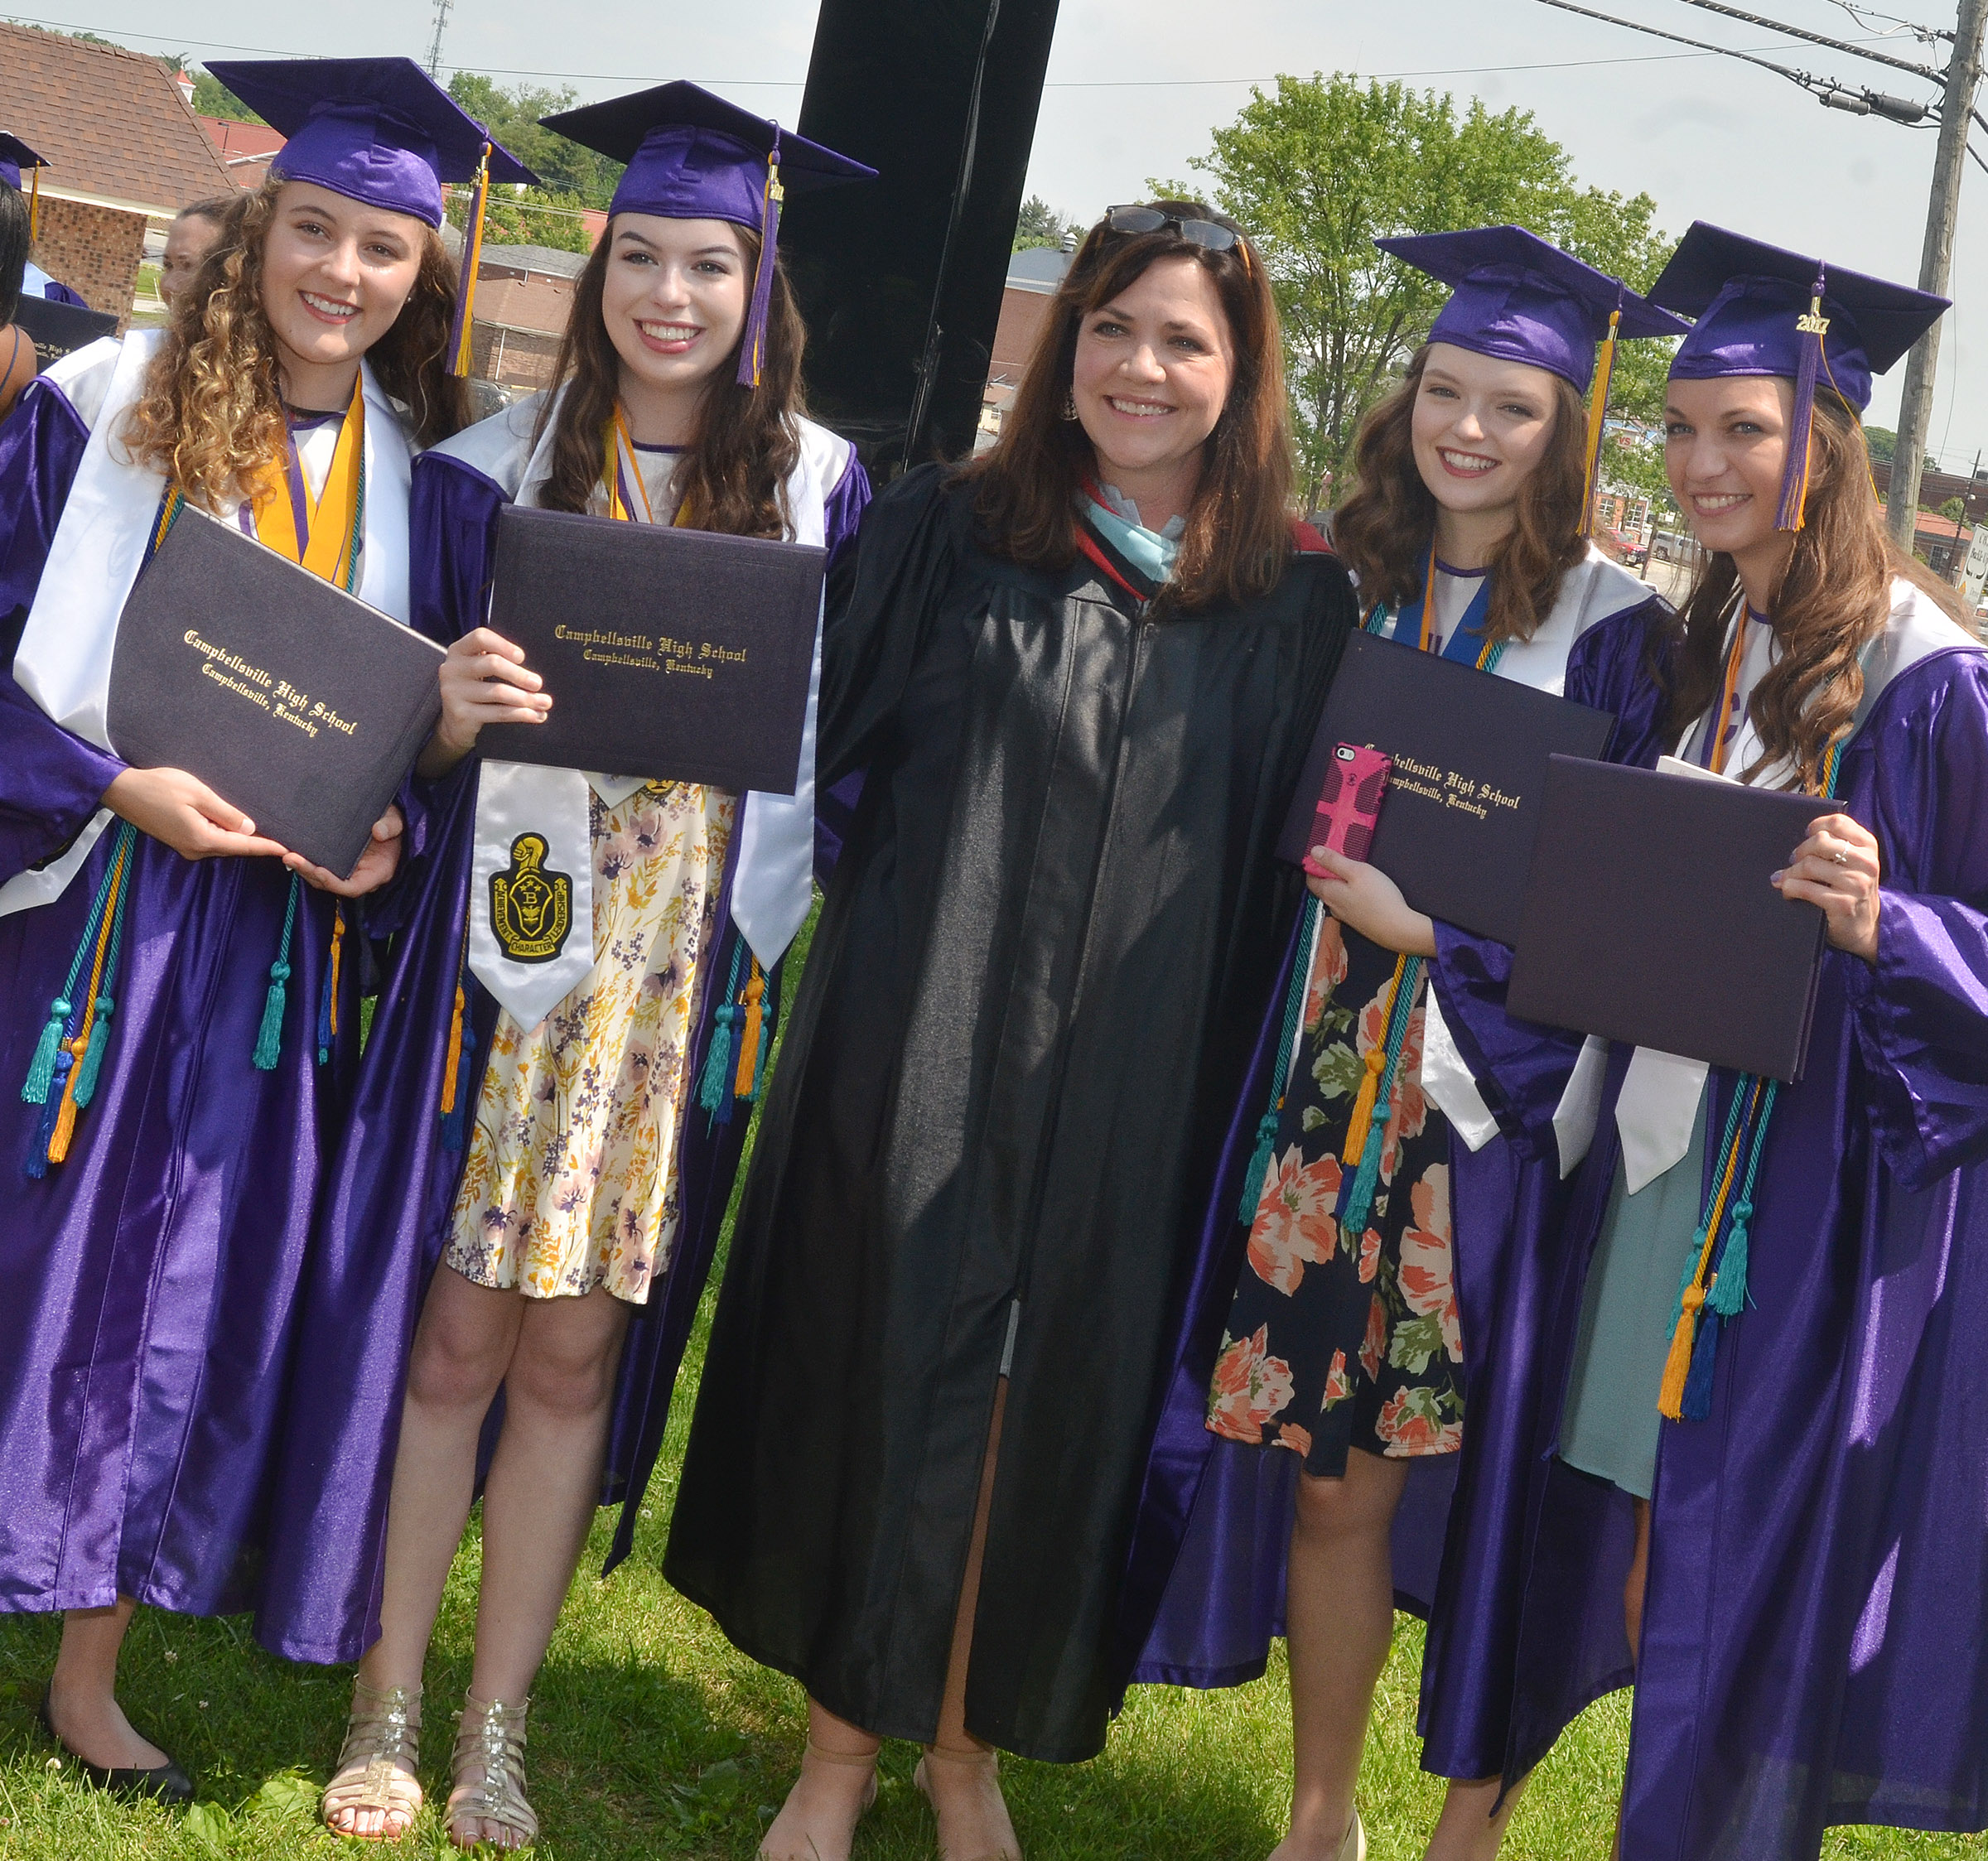 CHS teacher Susan Dabney poses for a photo with graduates, from left, Caroline McMahan, Laura Lamb, Blair Lamb and Caylie Blair.